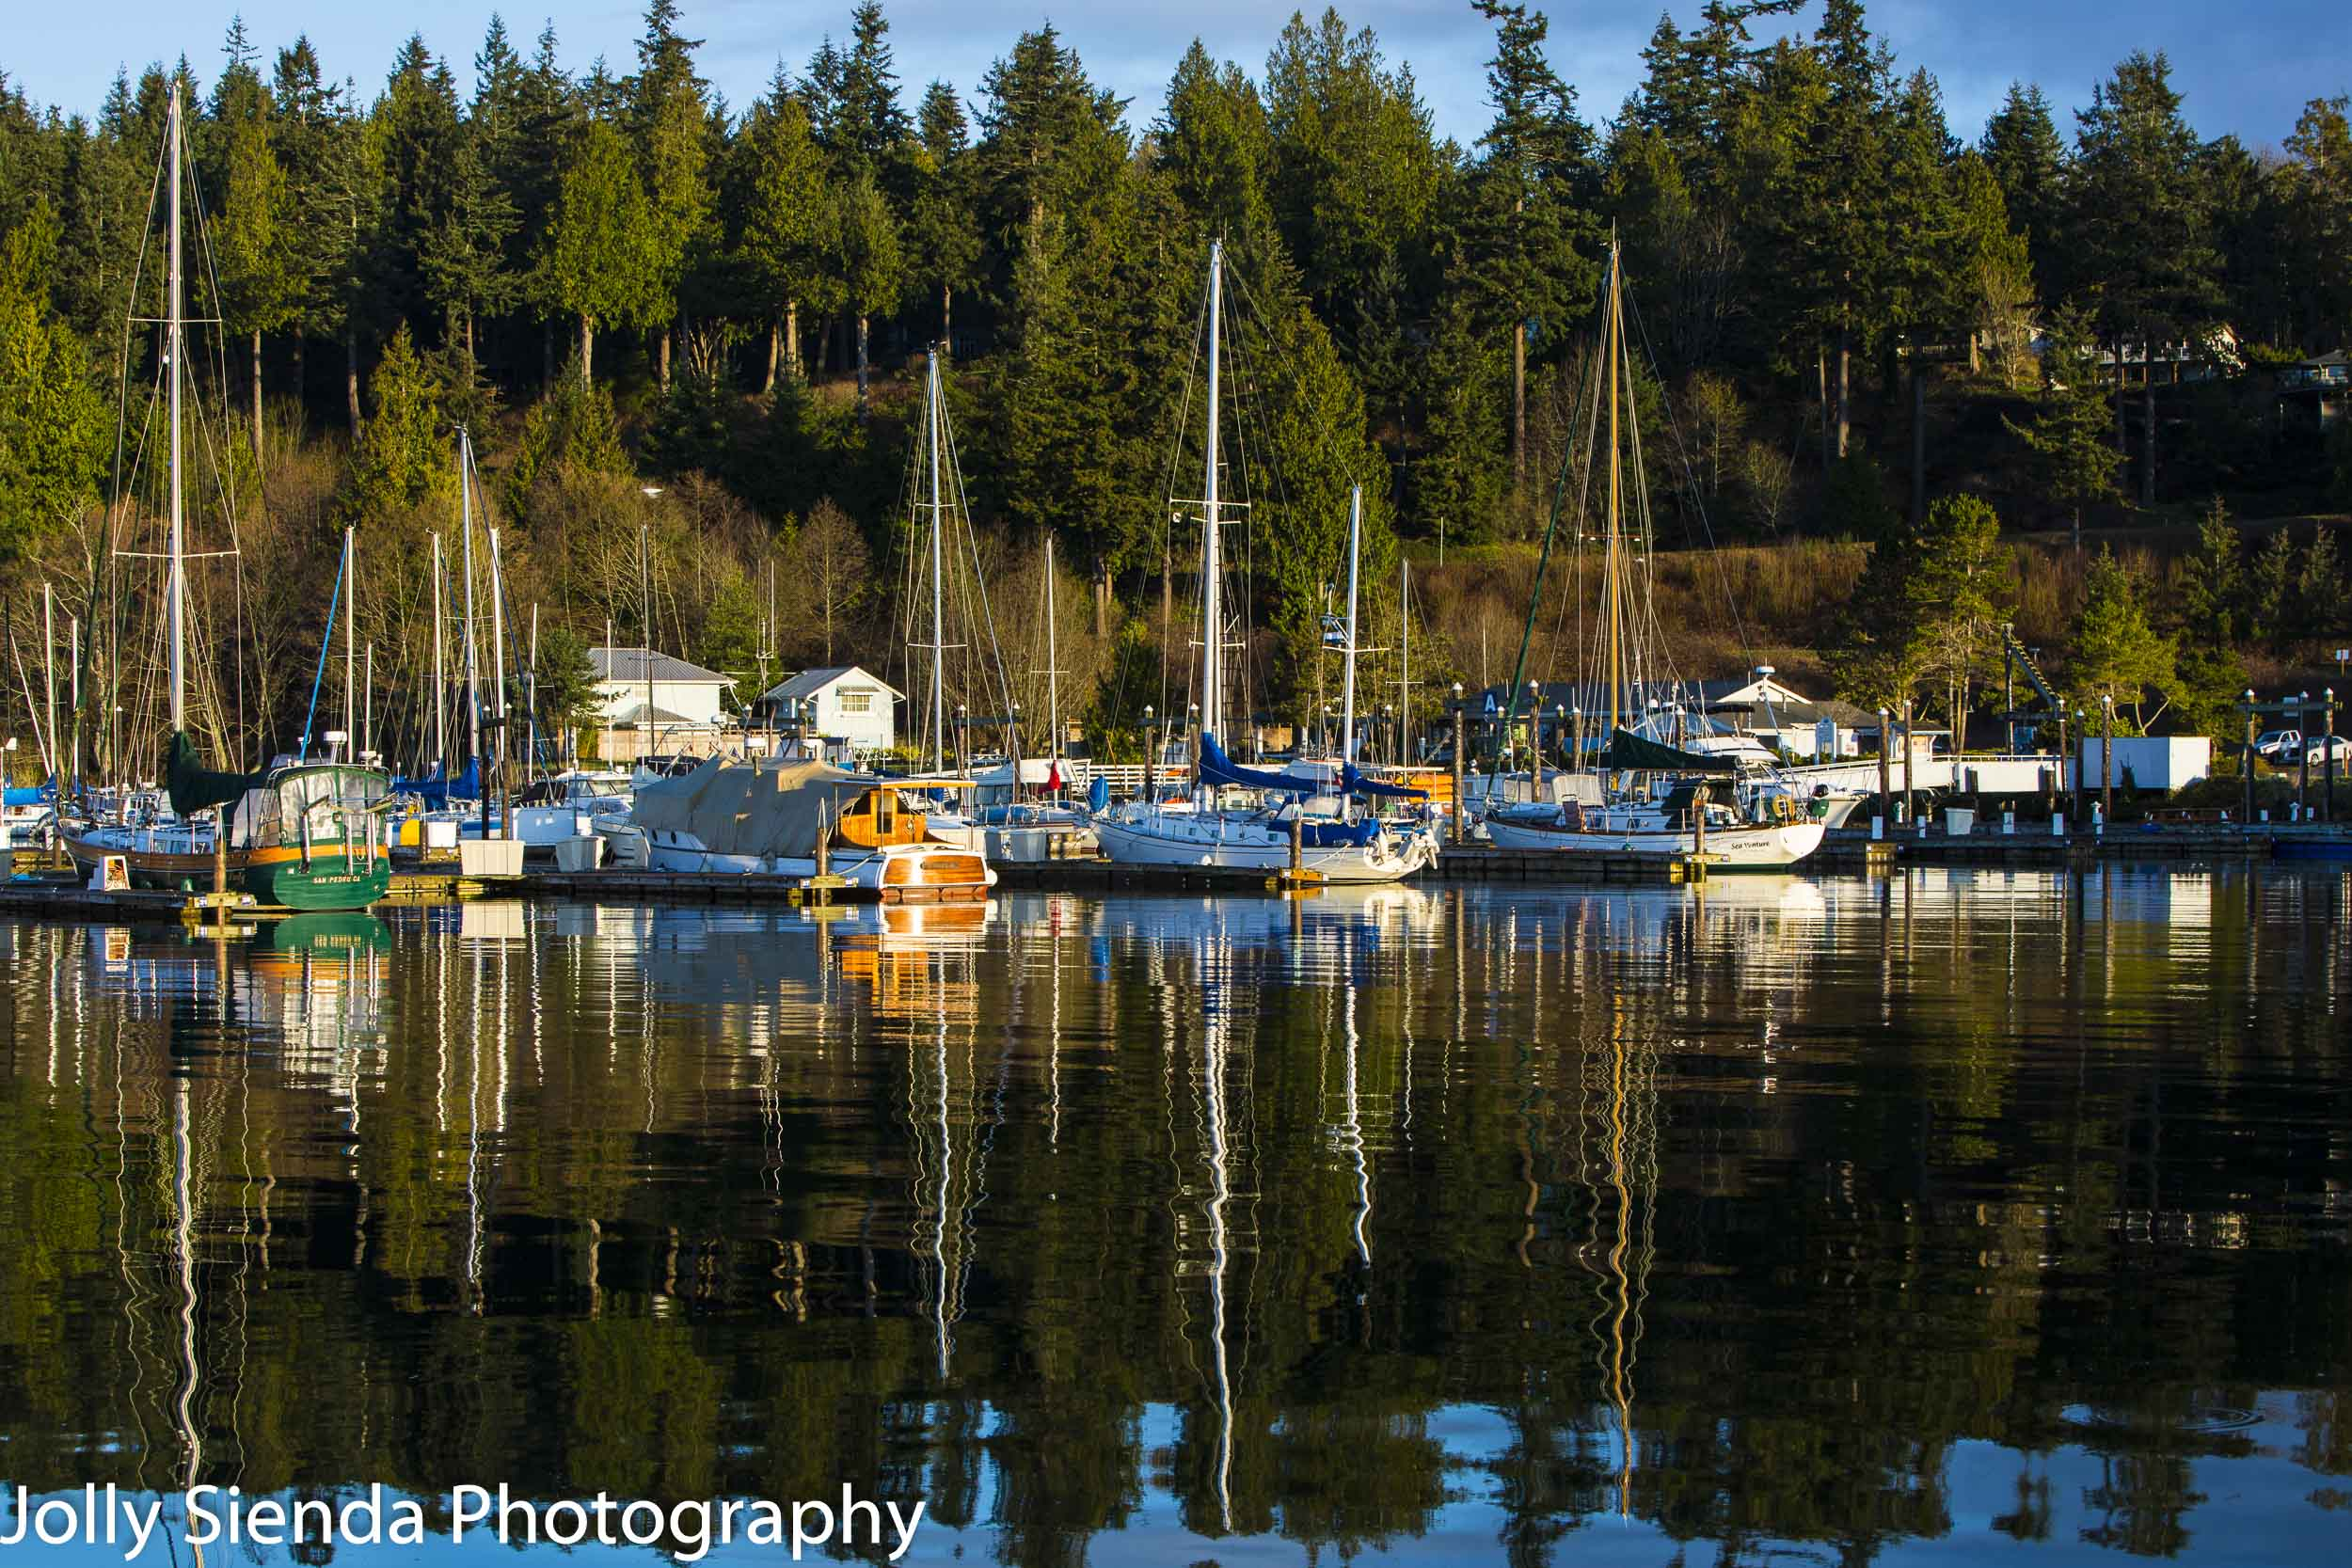 Splash of reflected color of evergreen trees and colored boats o